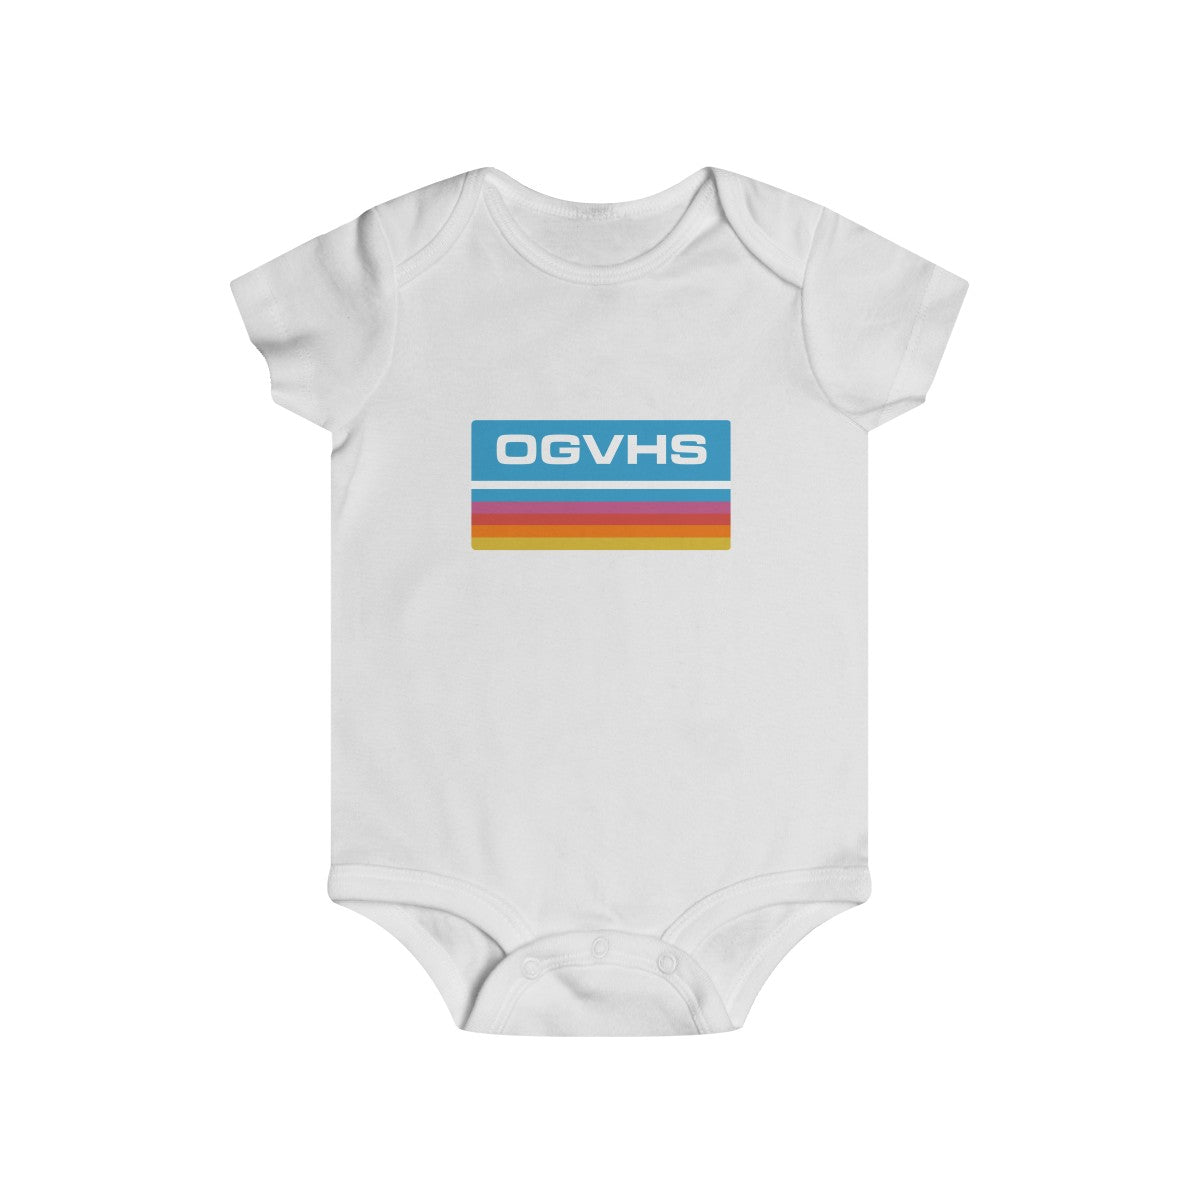 OGVHS Infant Rip Snap Tee